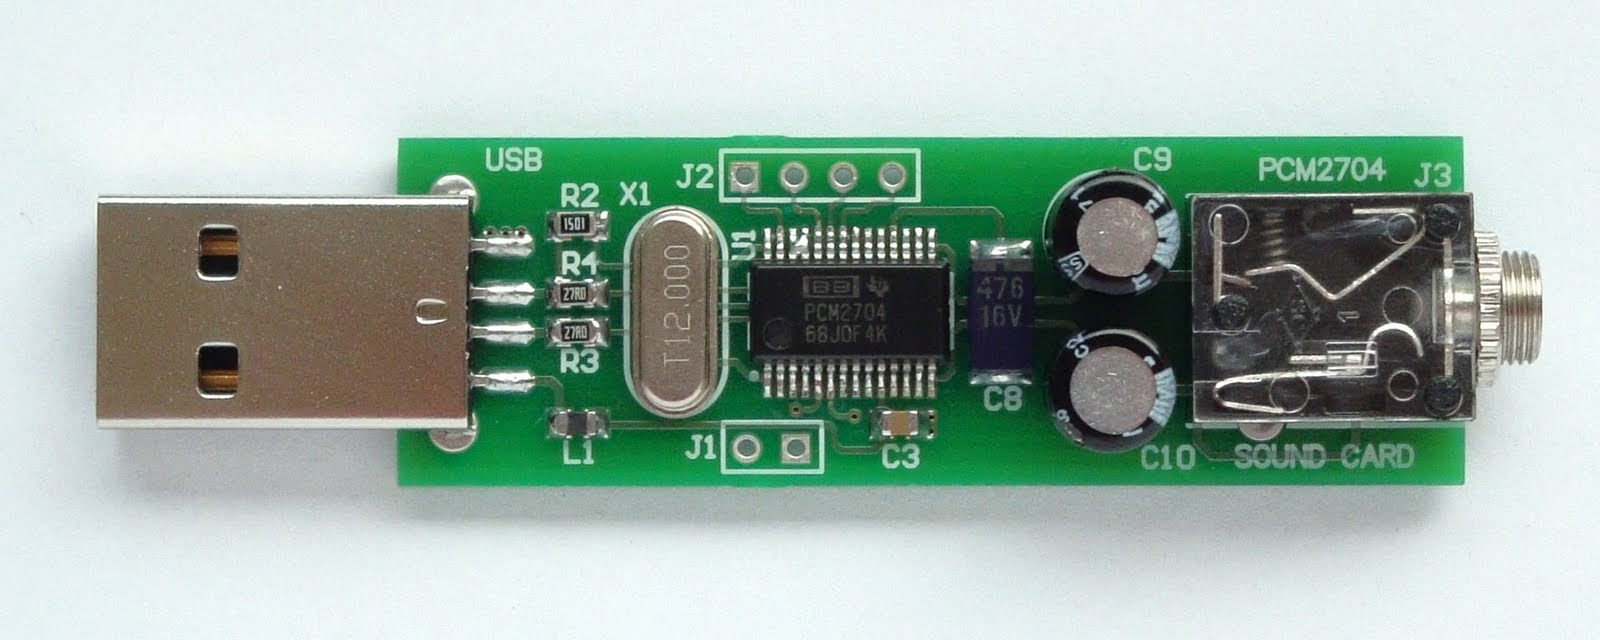 Make a Sound Card with PCM2704